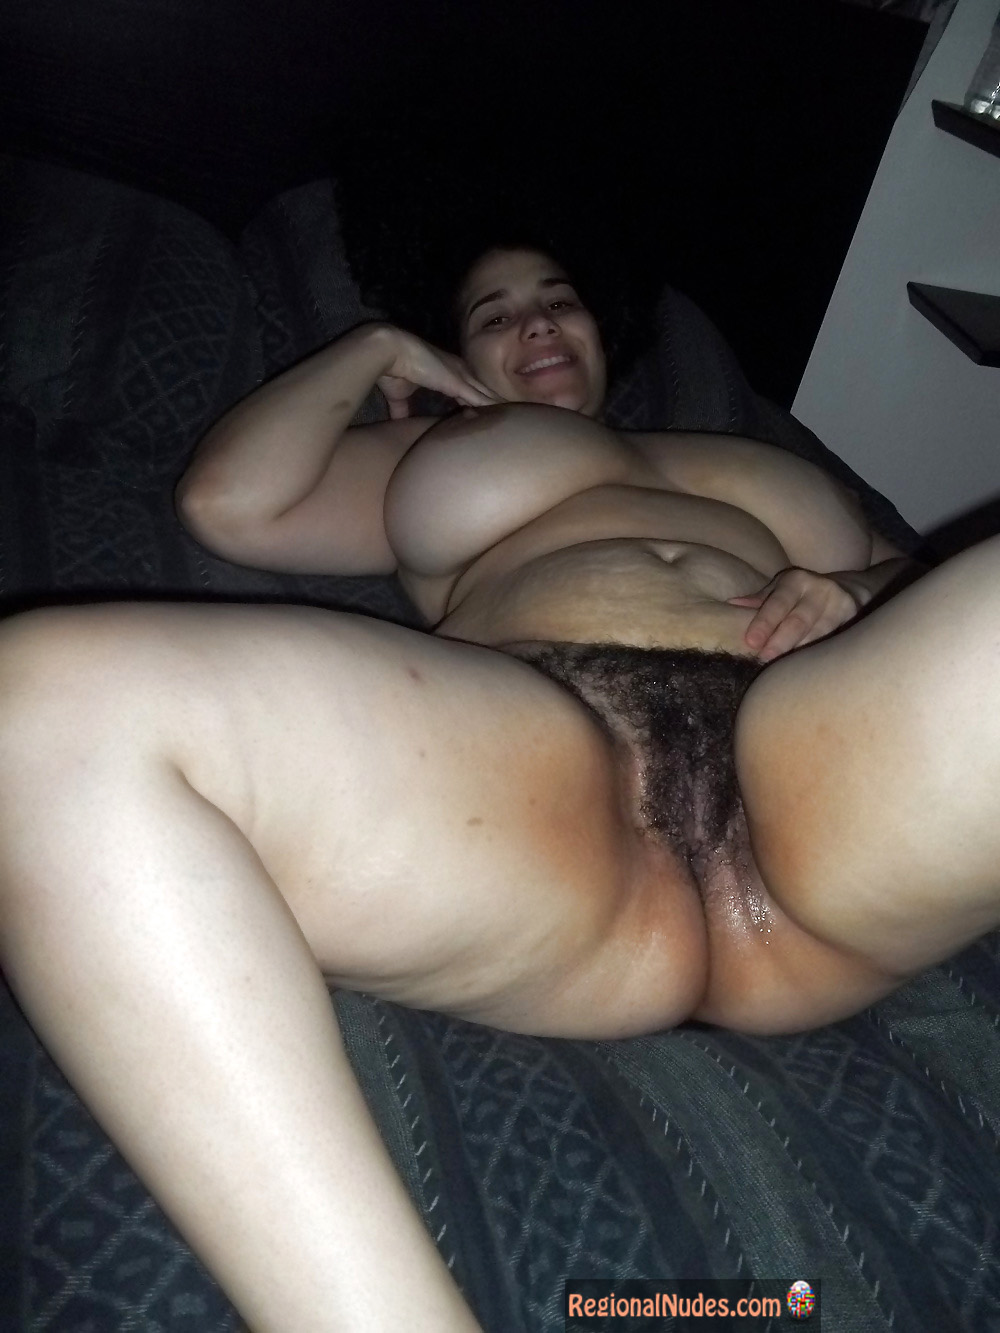 Hairy Women Fat Nude